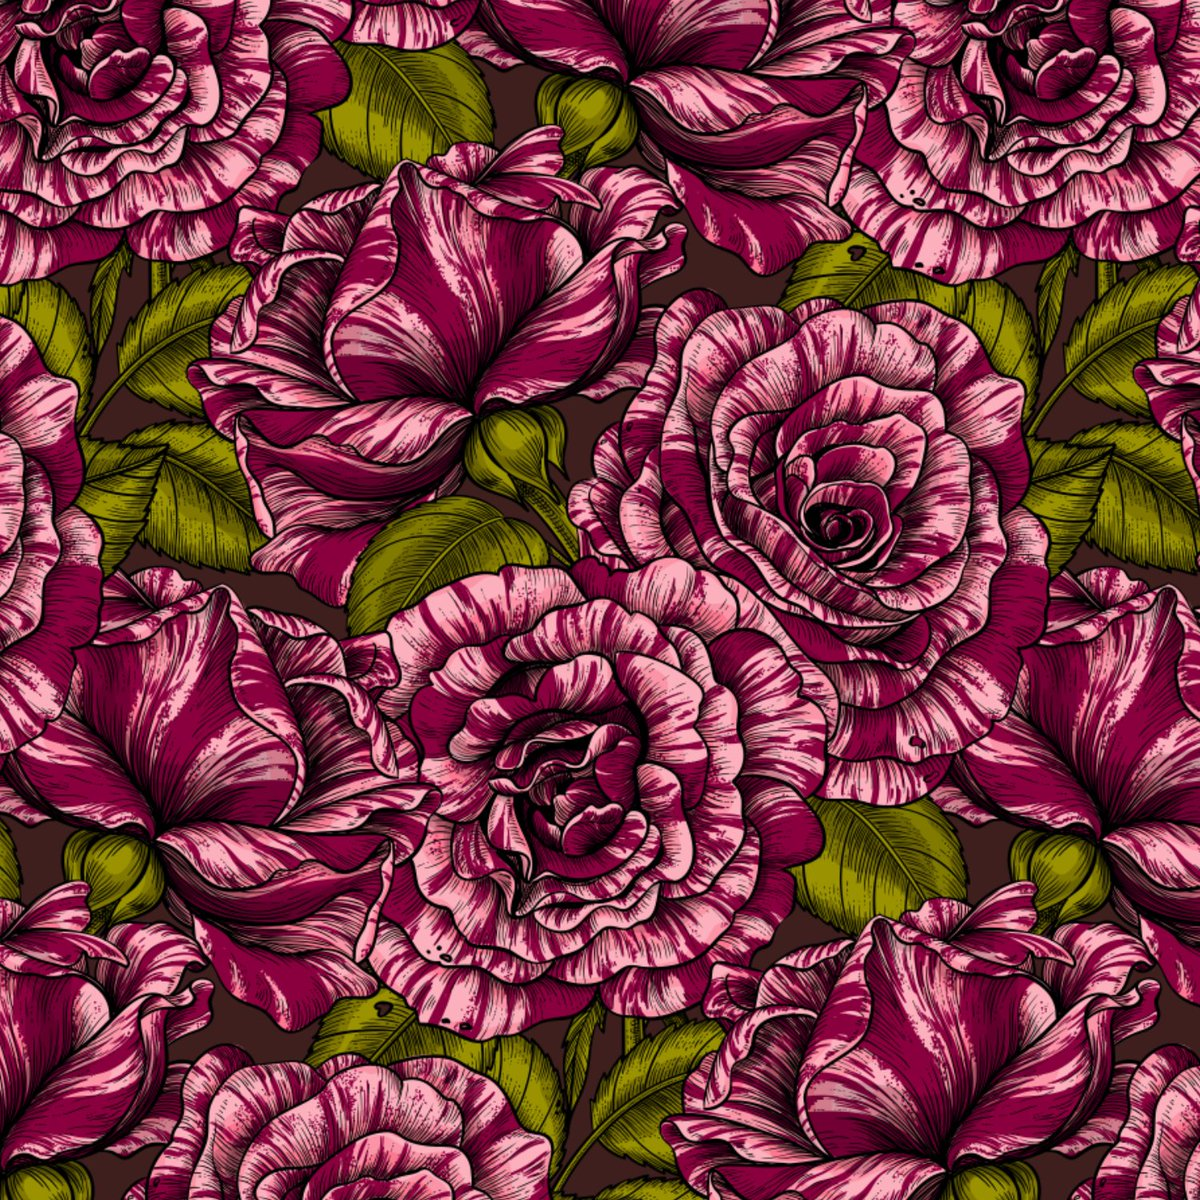 """two colorways of my latest pattern""""Roses for you"""" #pattern #patterns #surfacedesign #floral #illustration #roses #rose #fabric #print #design #vector pic.twitter.com/mfEI9JkIQT"""